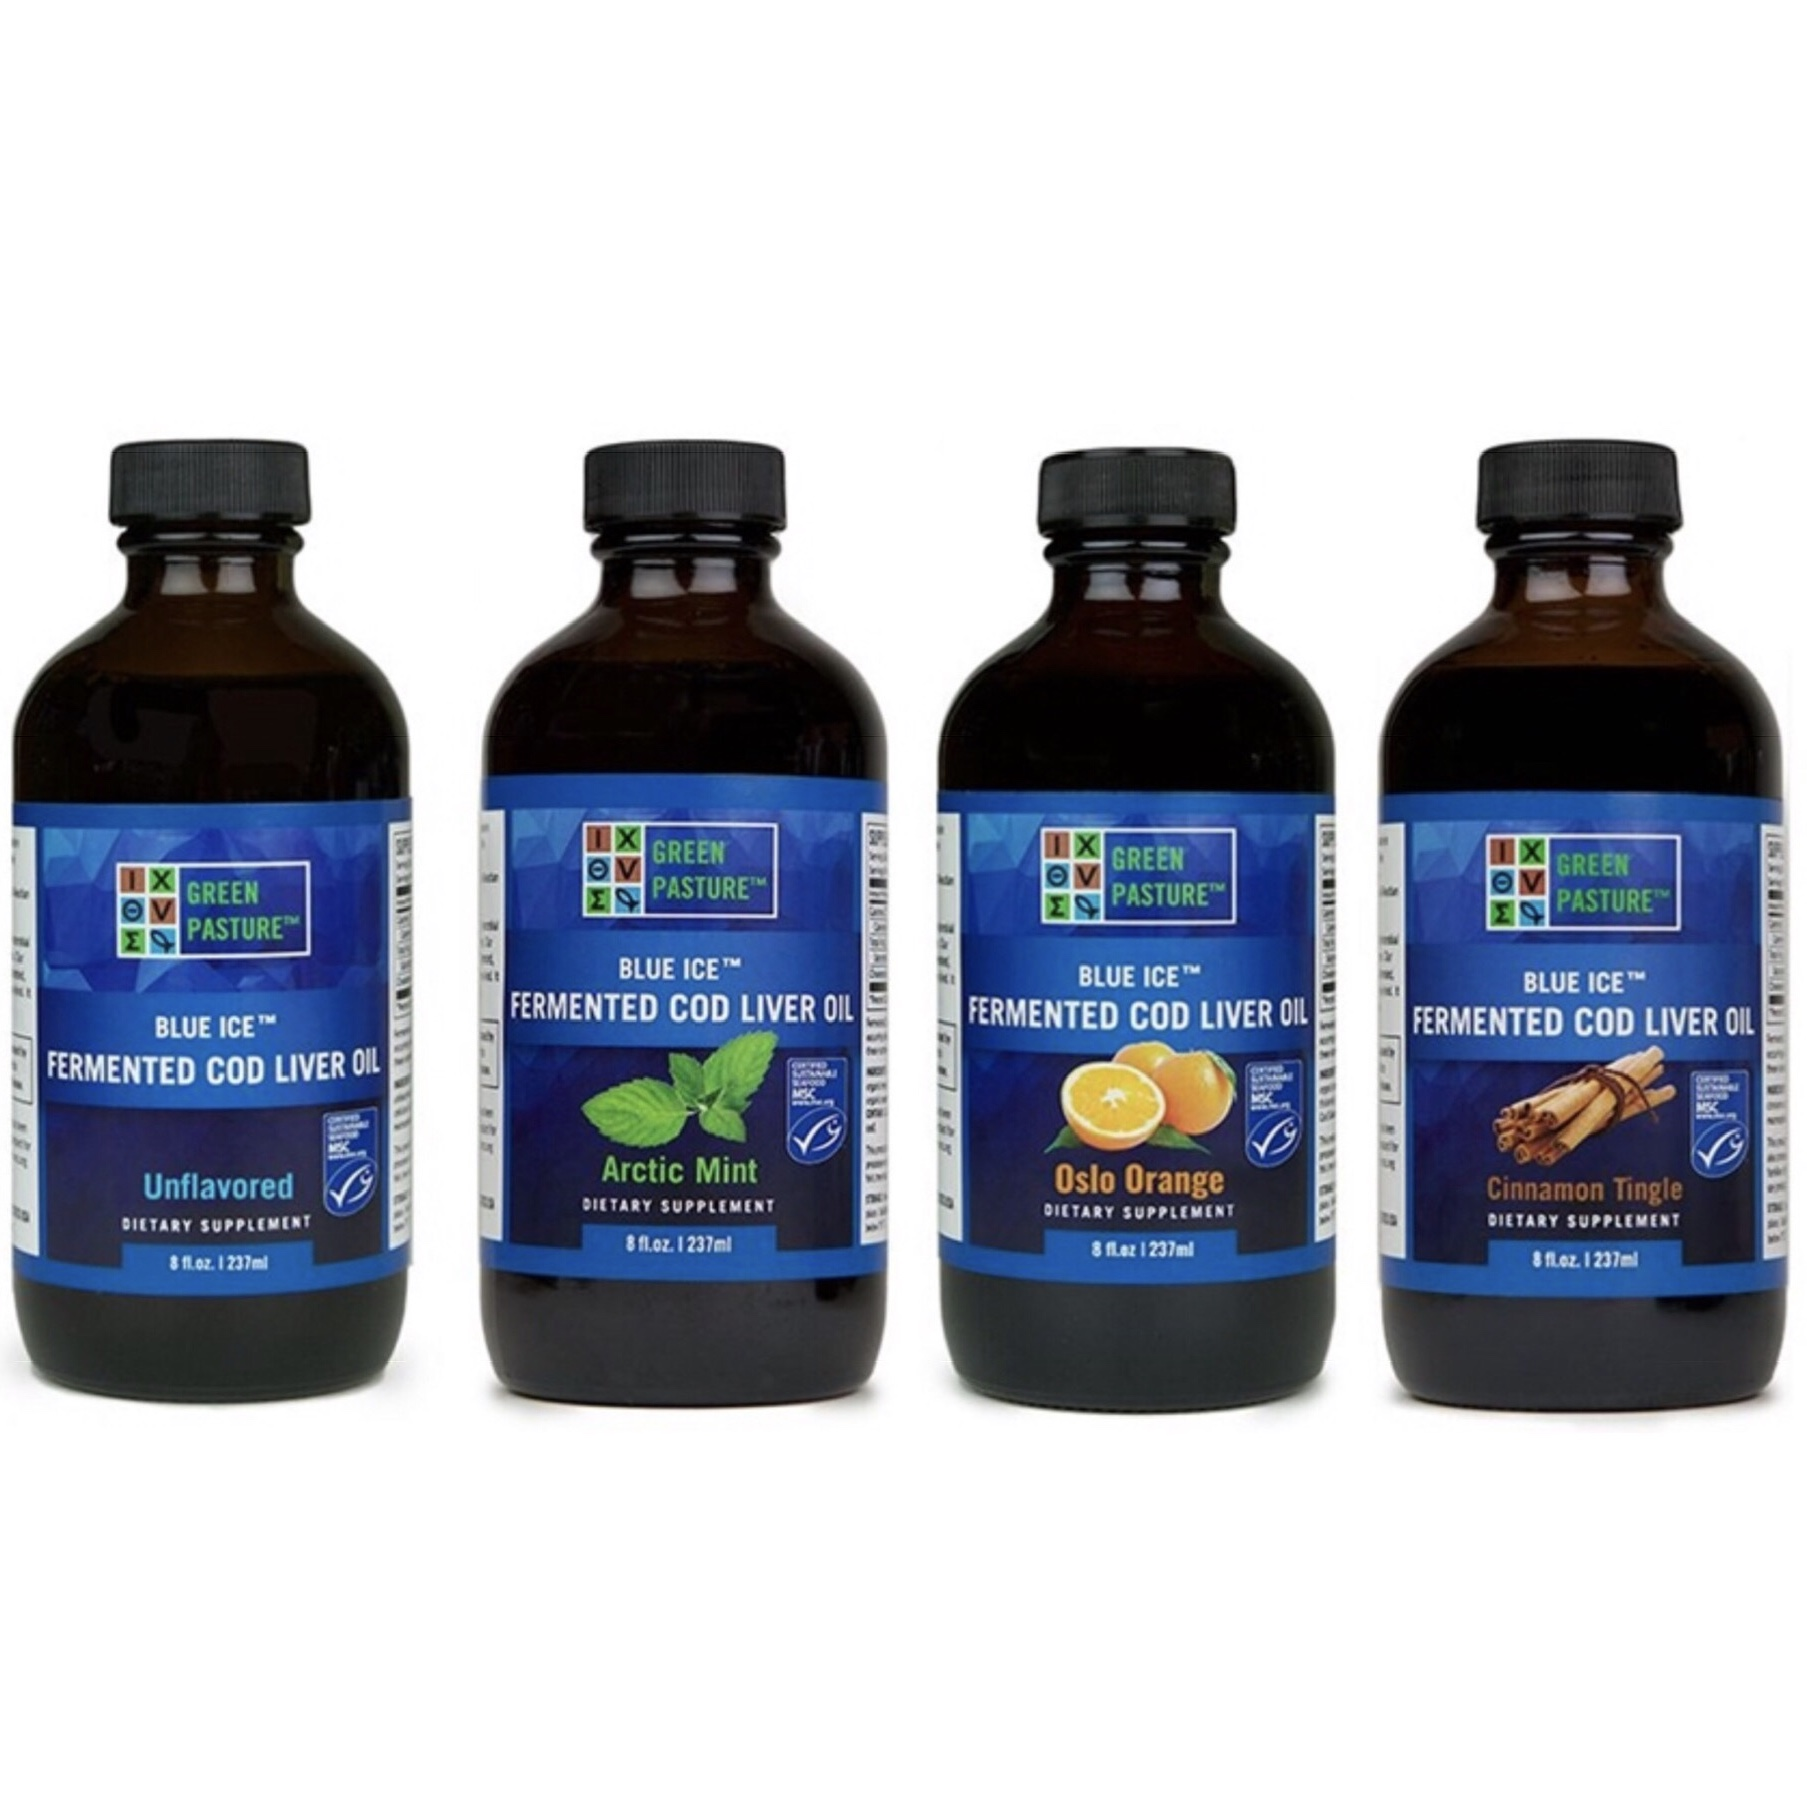 GREEN PASTURE Blue Ice Fermented Cod Liver Oil - - high in Vitamins A and D,which are powerful antioxidants, and a great source of Omega-3 fatty acids- helps reduce inflammation, neutralize free radicals, improve arthritis symptoms, reduce joint pain, lower risk of heart disease, and improve symptoms of anxiety and depression- supports strong,healthy bones▶️ Click on the FLAVOR you prefer below 👇🐟Original 🌱Arctic Mint ✨Cinnamon Tingle 🍊Oslo Orange (my preference is Arctic Mint)